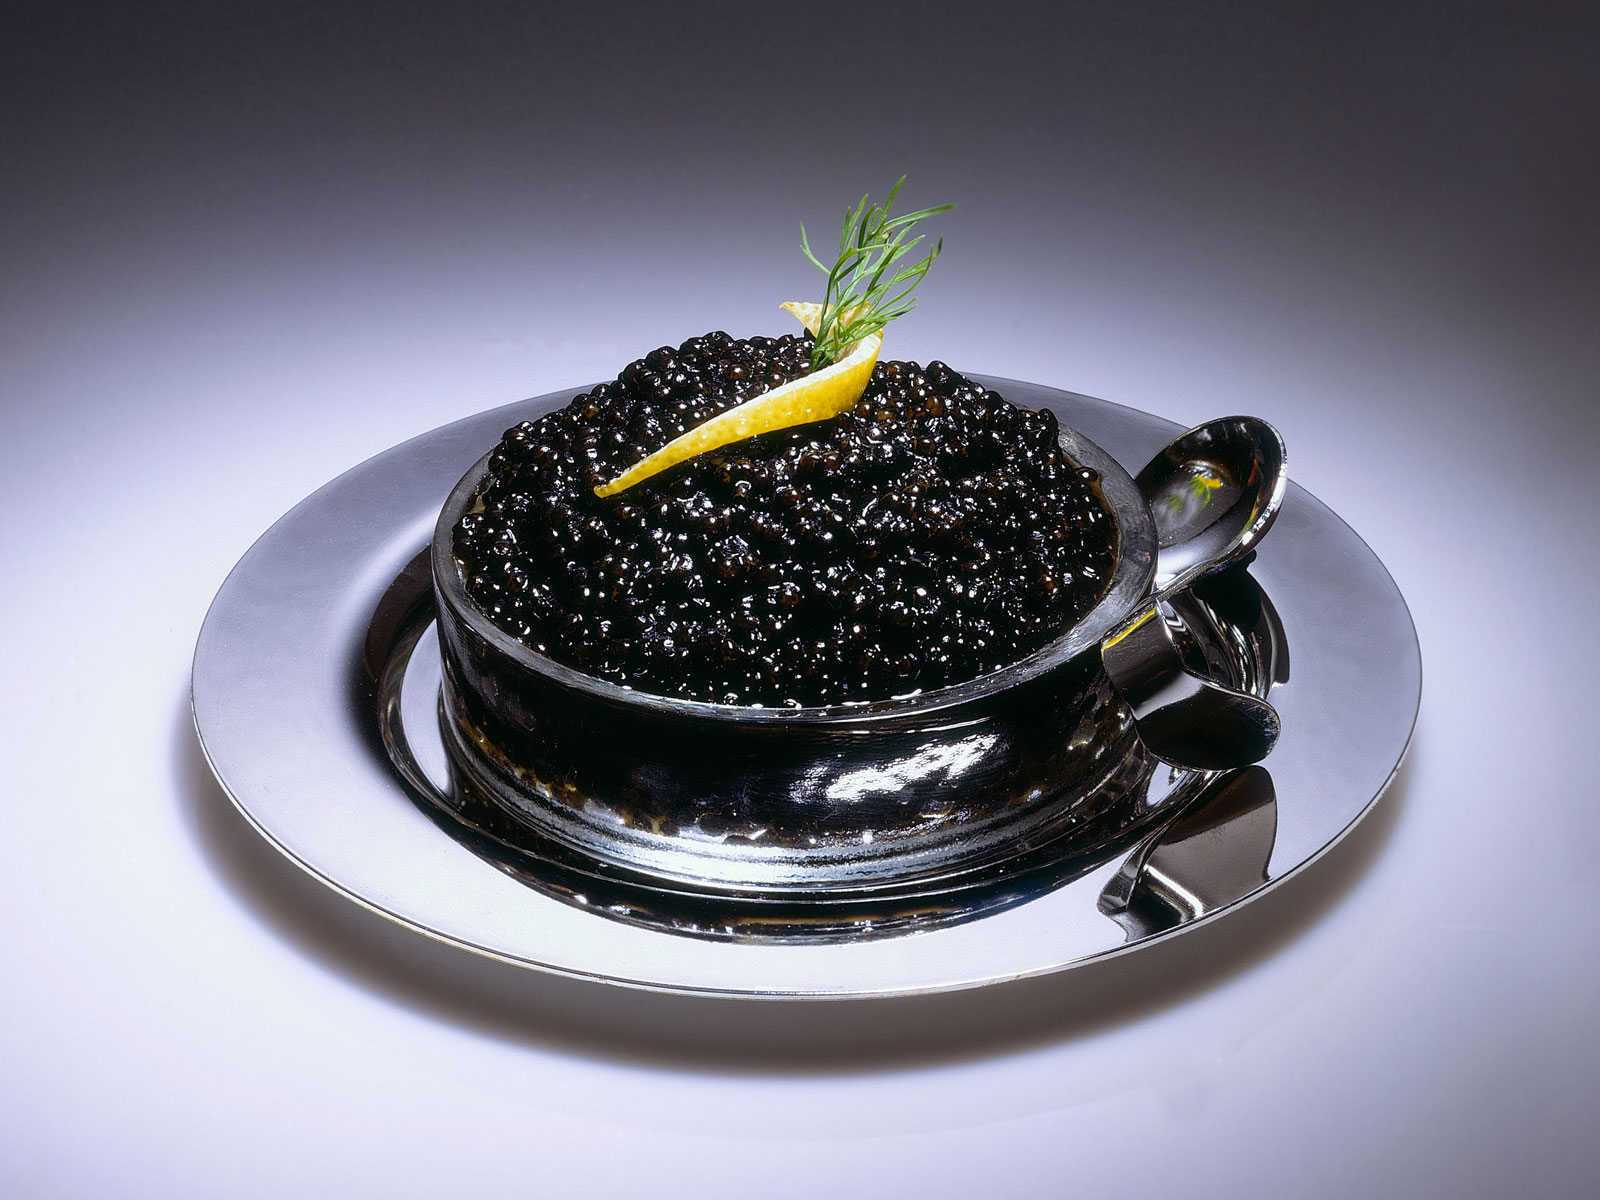 Caviar-Infused Gin Is Available at This Michelin-Starred British Restaurant